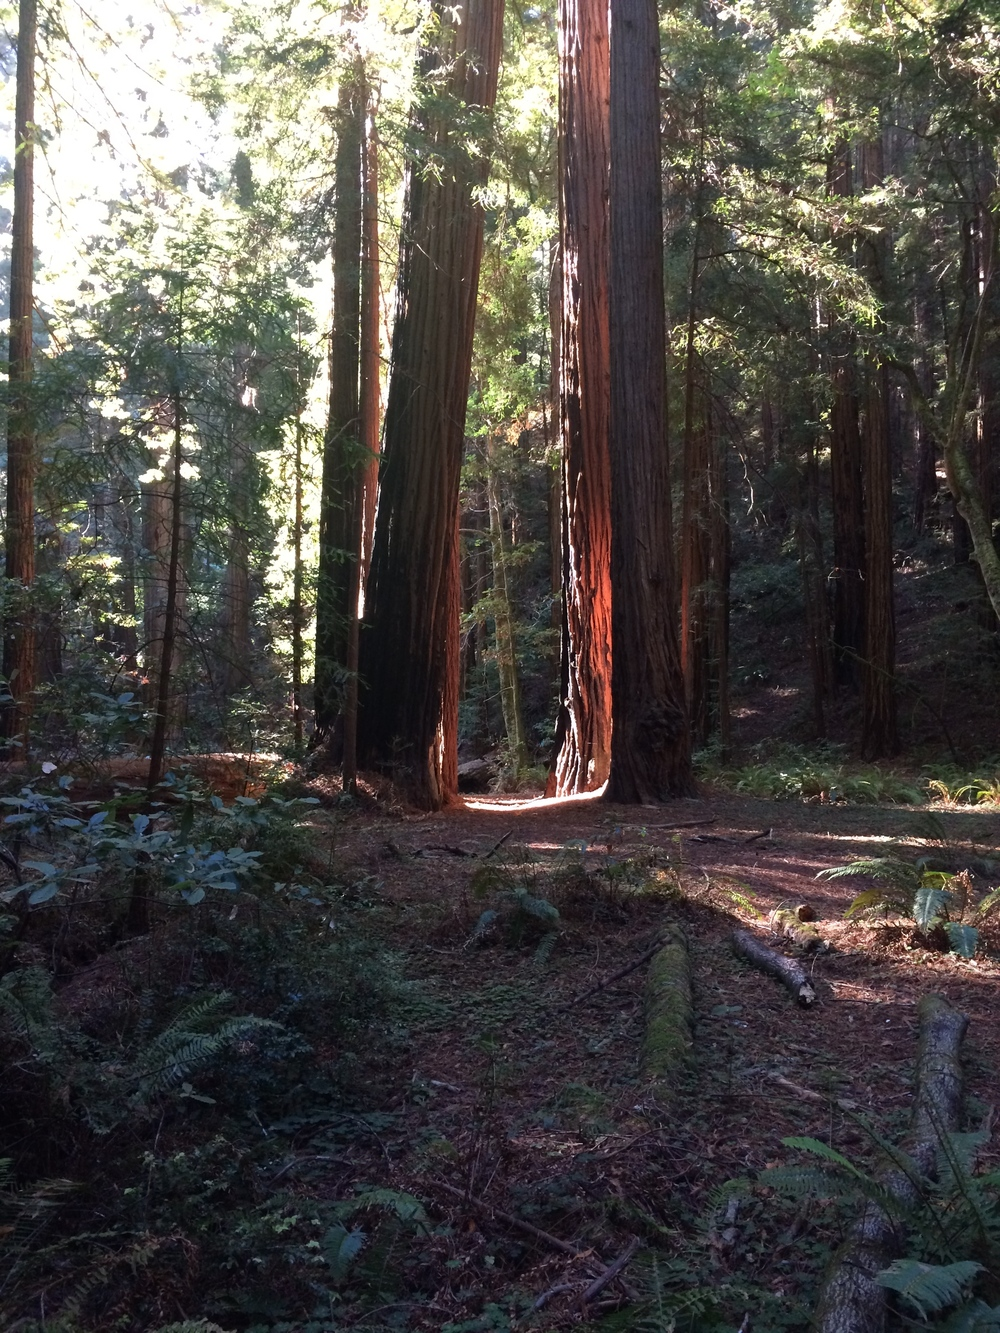 The Redwoods of Muir Woods.